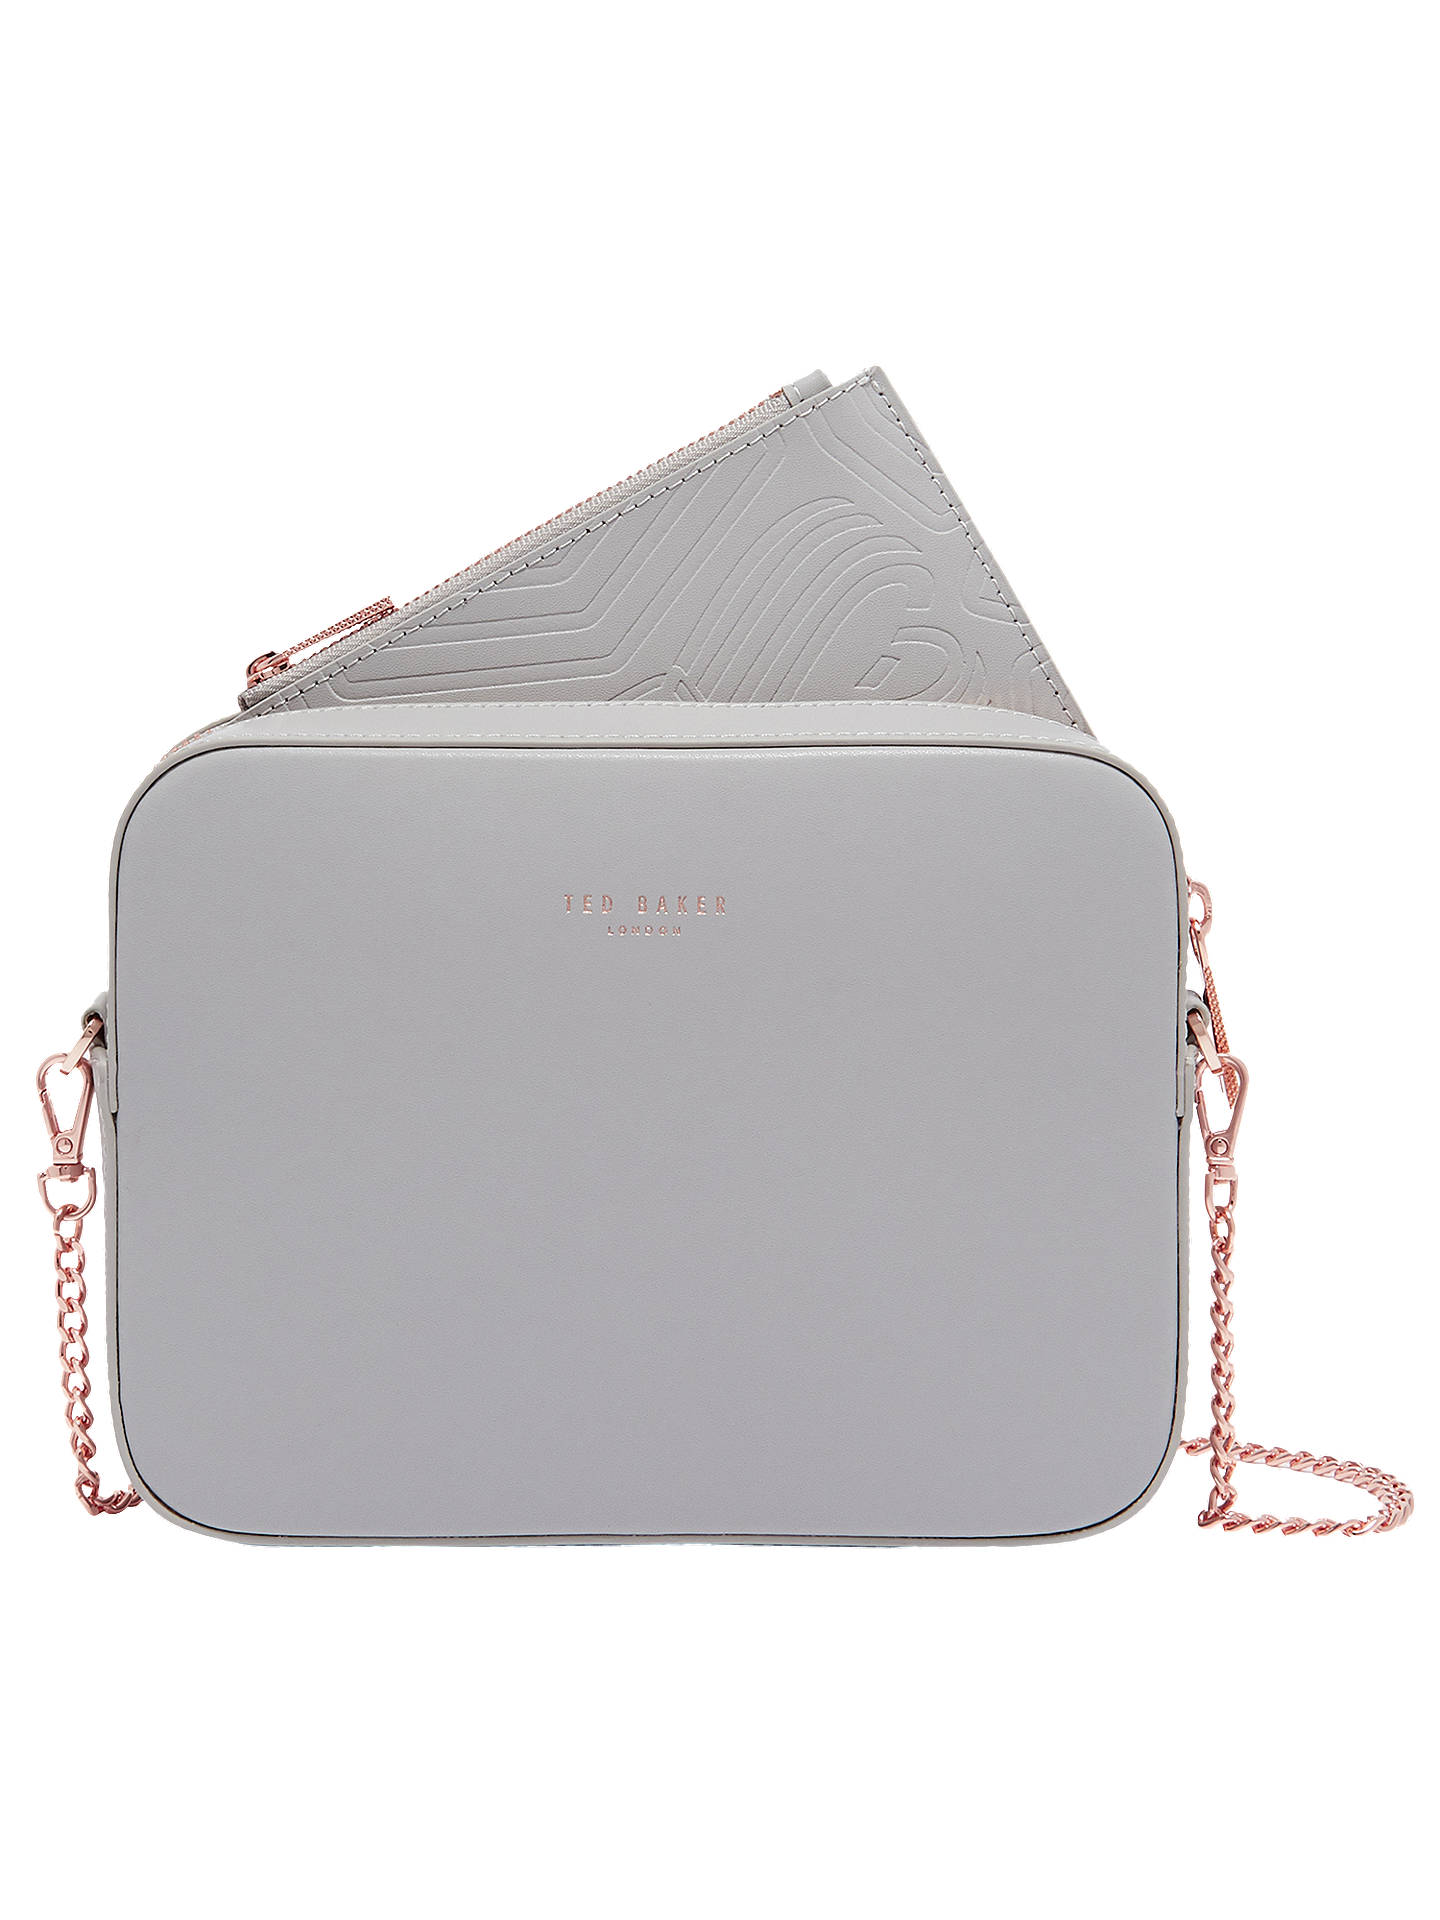 649f06dba Buy Ted Baker Laneyy Leather Cross Body Camera Bag, Light Grey Online at  johnlewis.